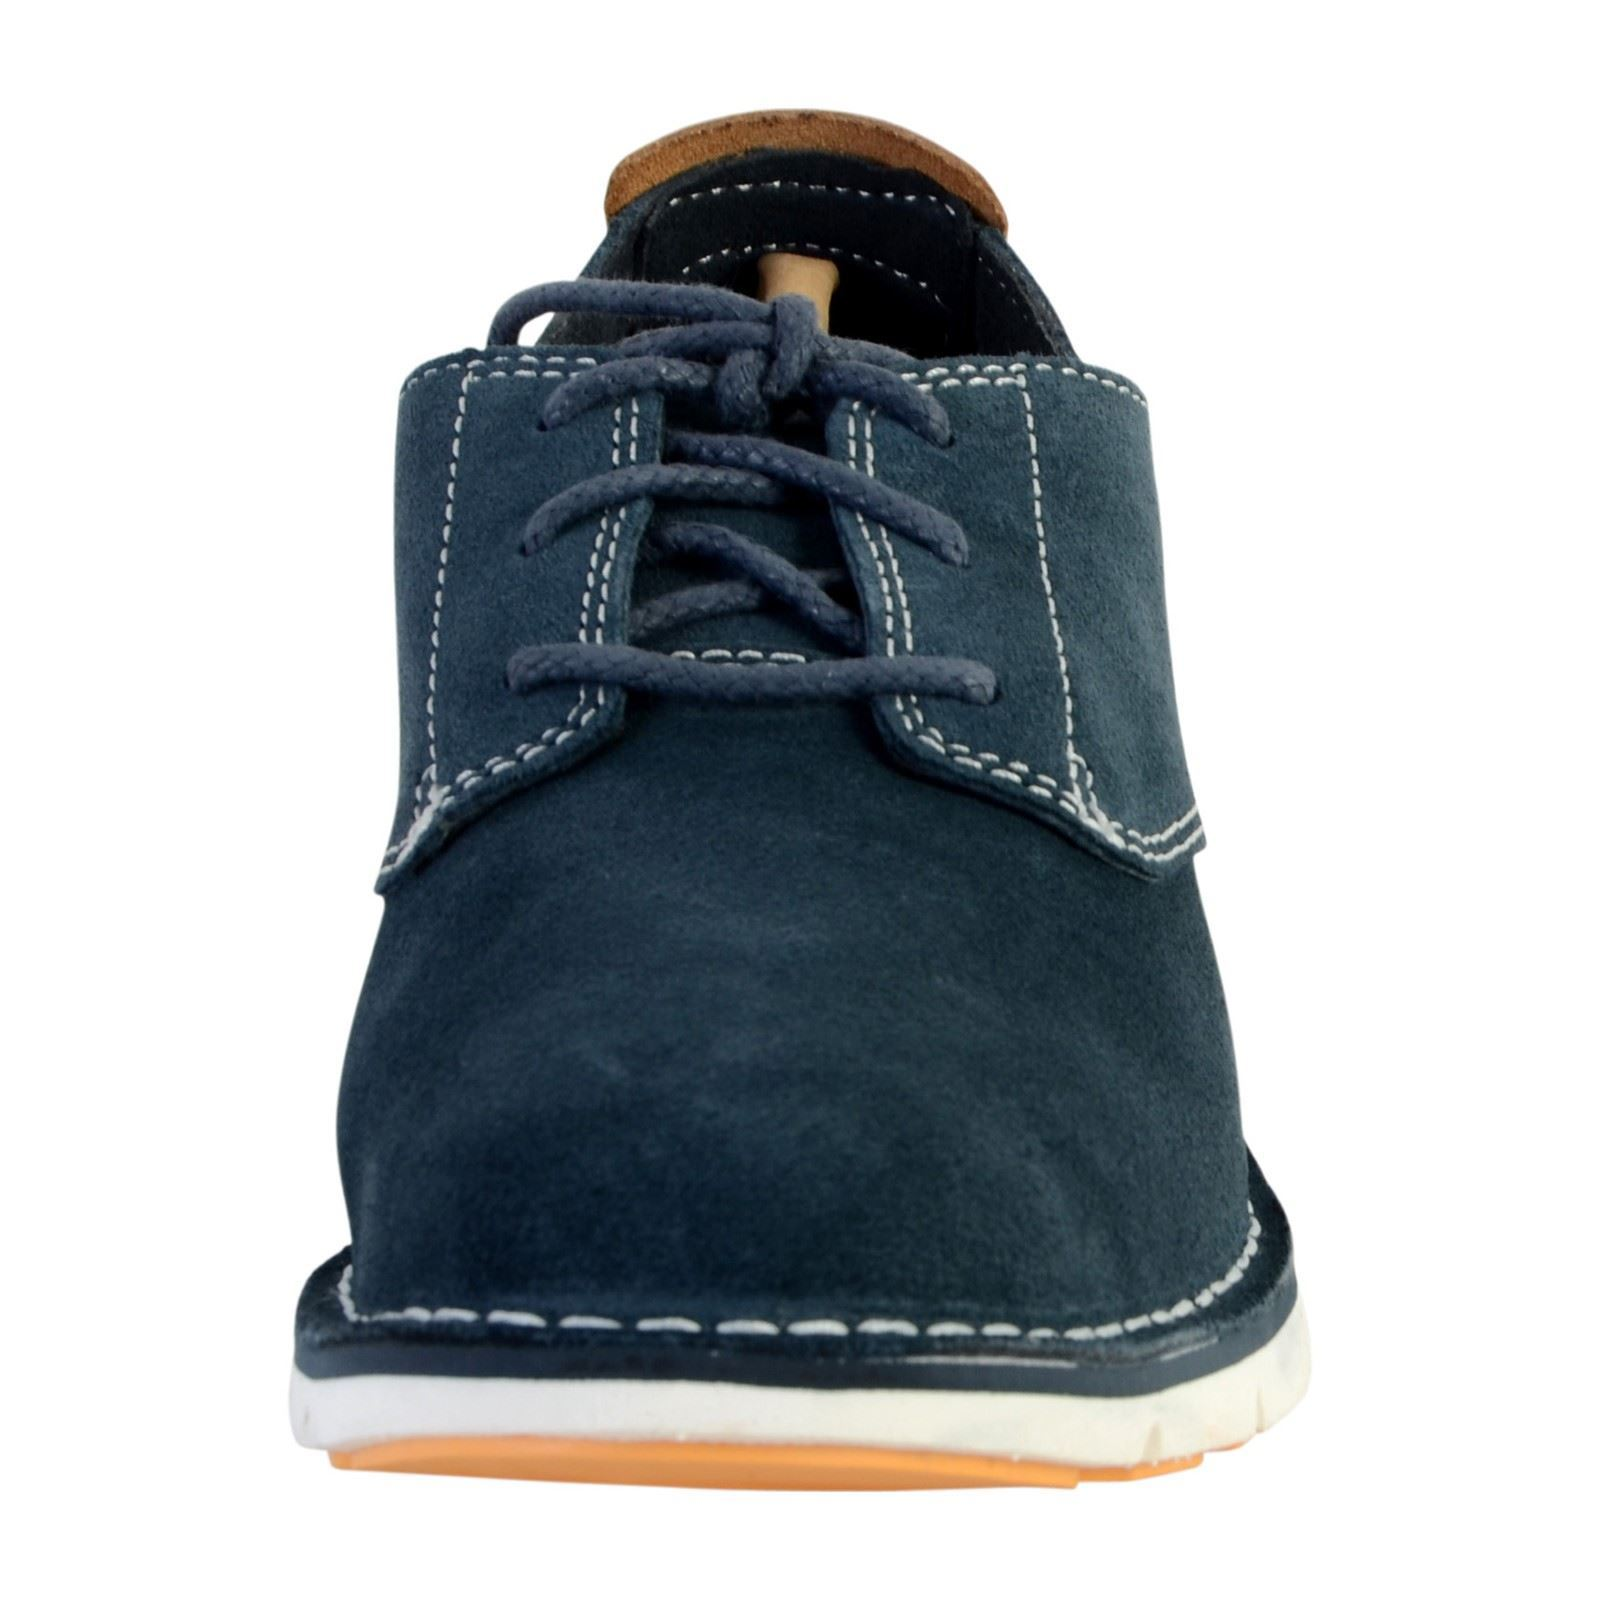 Tidelands oxford sue Derbies bleu